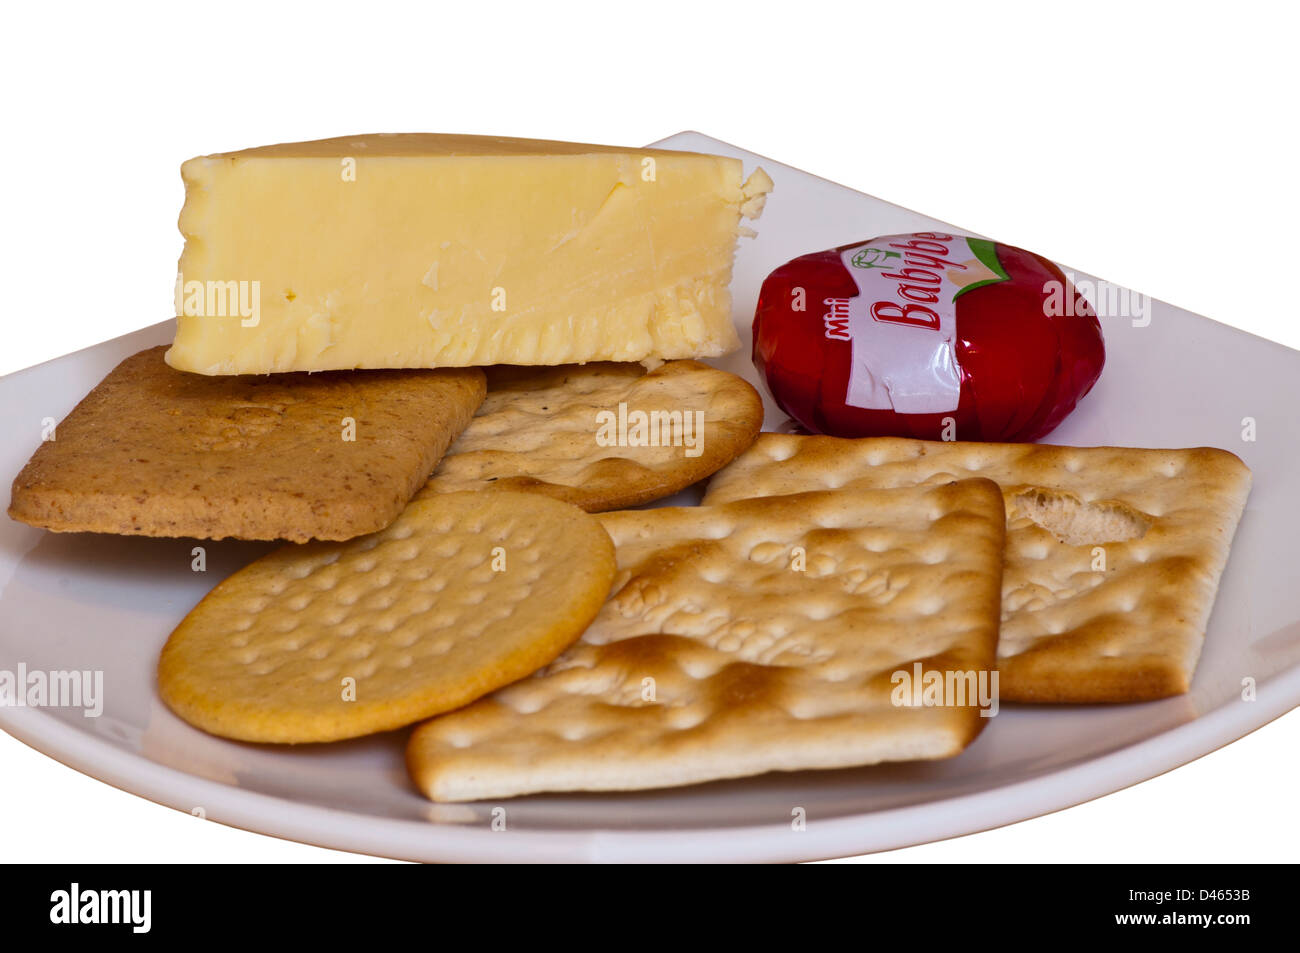 Plate Of Cheese and Biscuits  sc 1 st  Alamy & Plate Of Cheese and Biscuits Stock Photo: 54225455 - Alamy